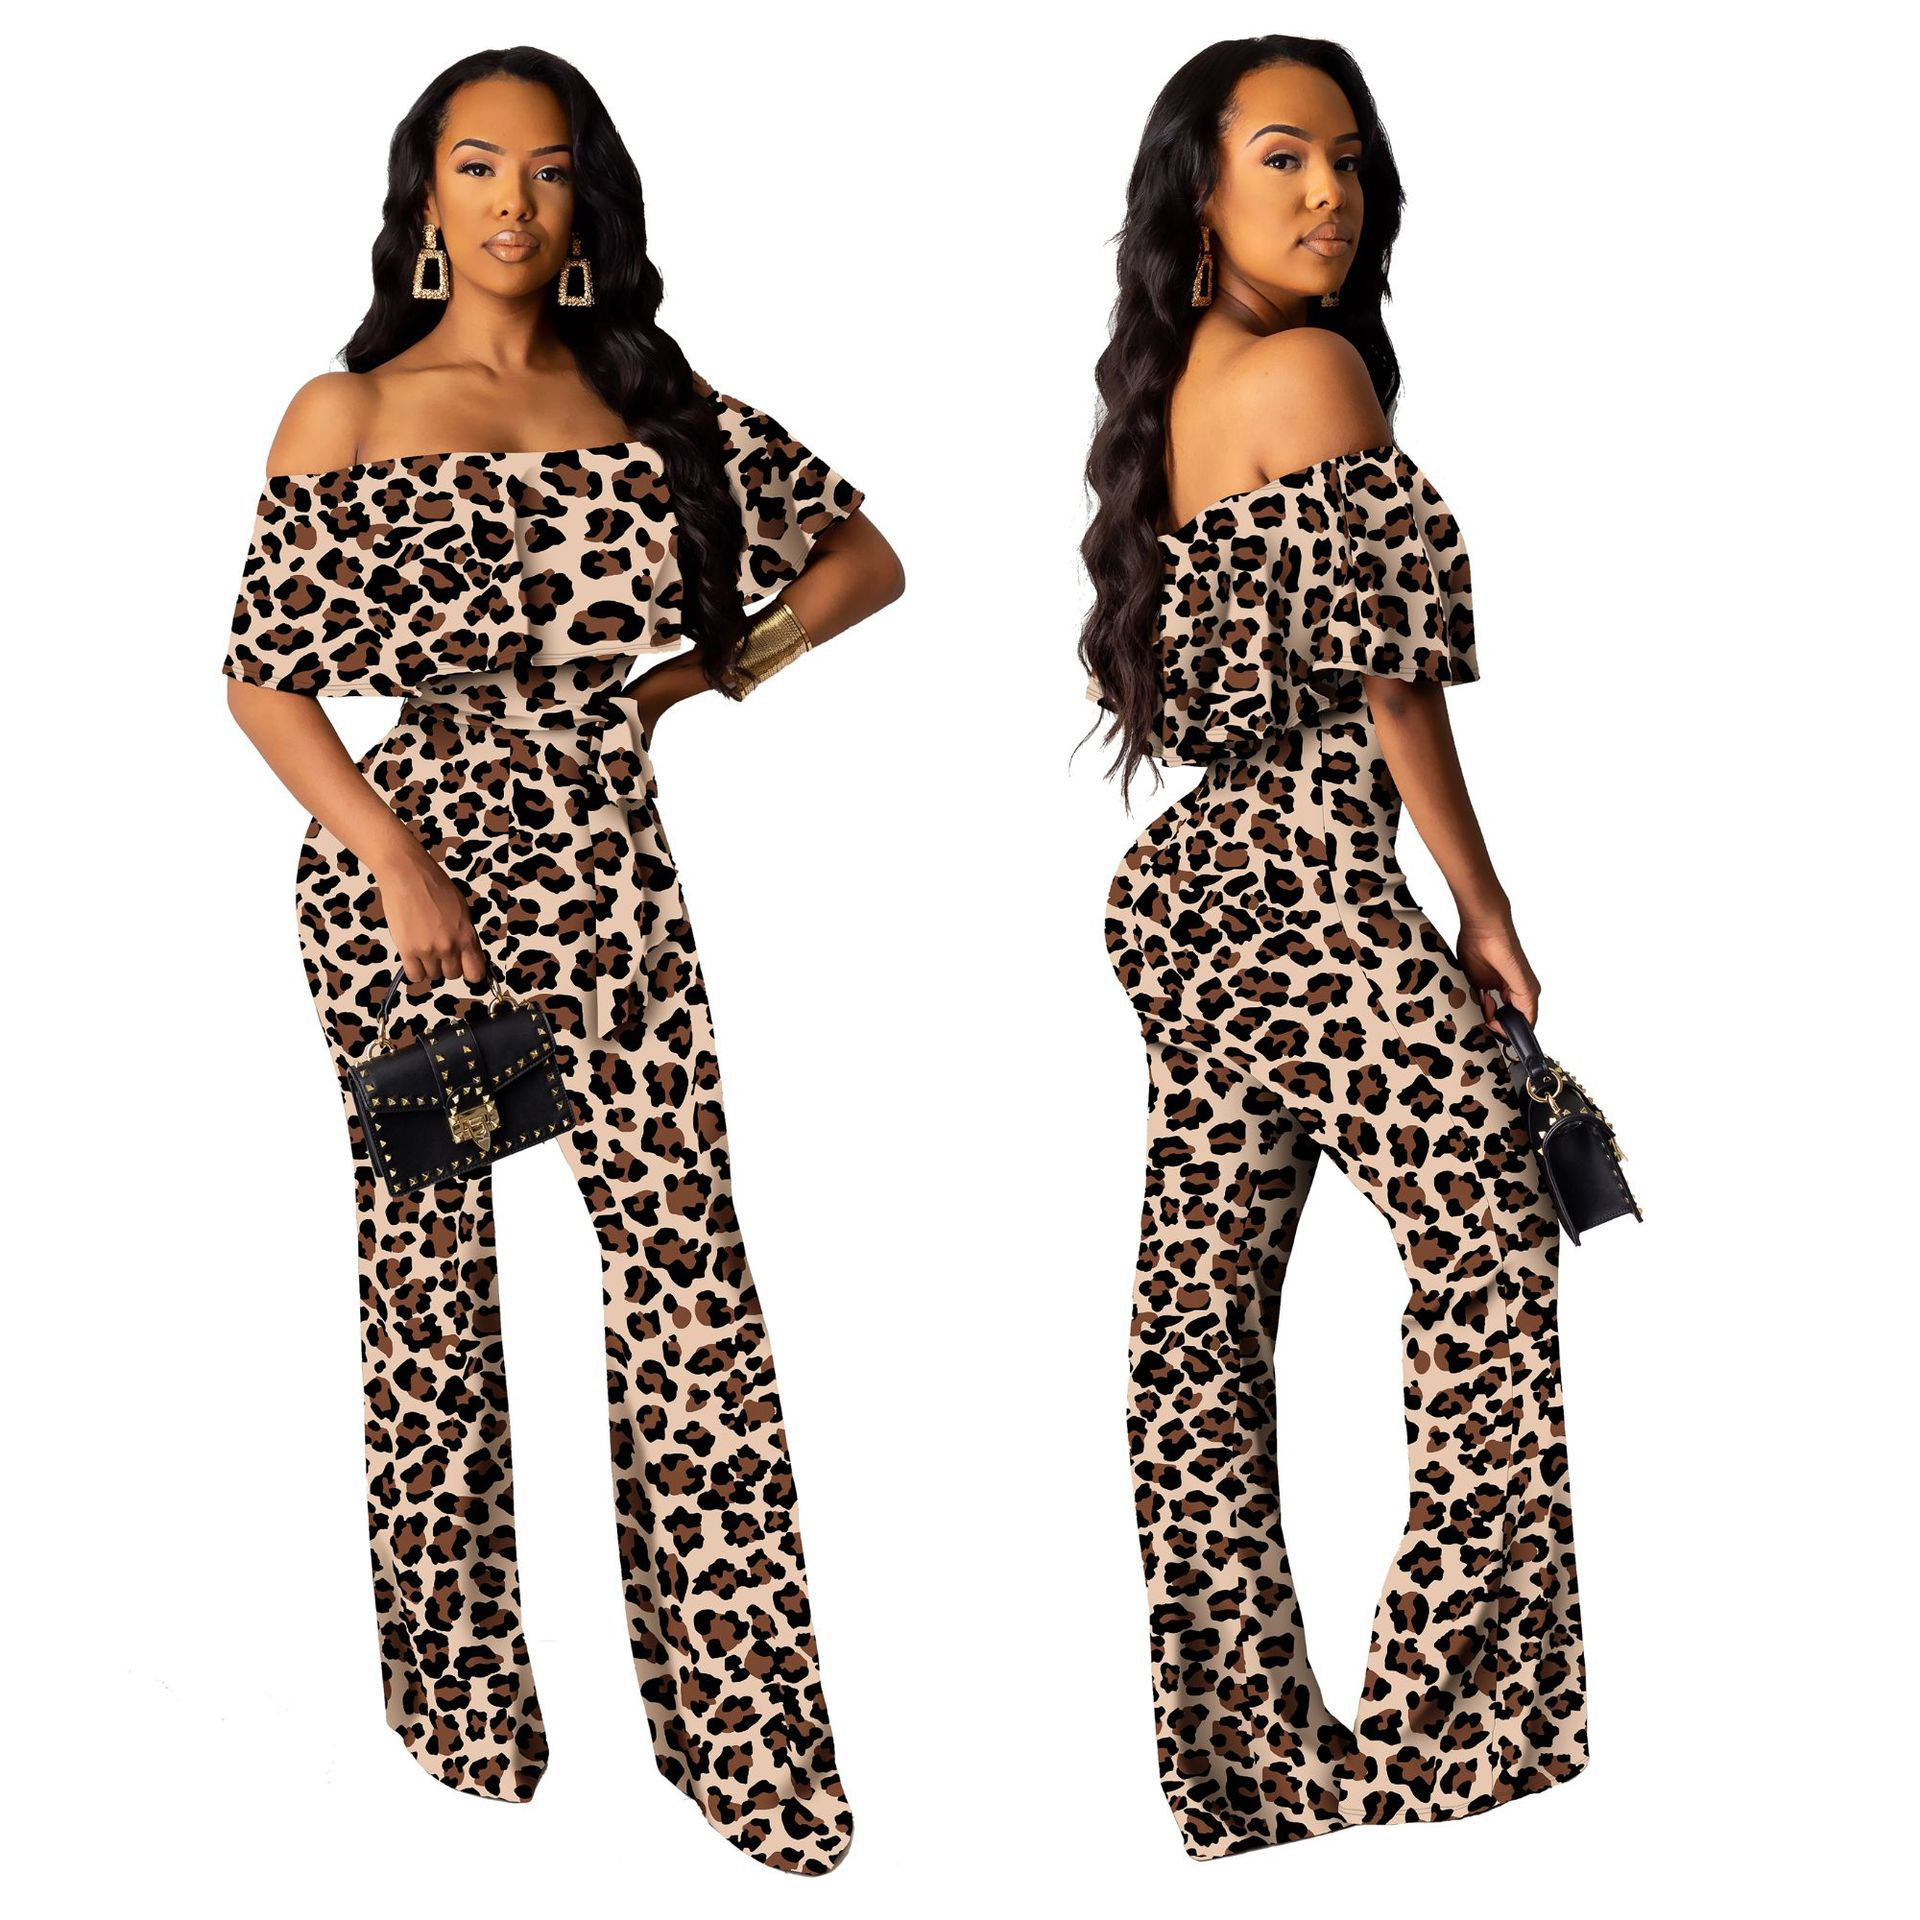 Fashion Word Collar Tube Top Jumpsuit Personalized Fashion Jumpsuit Jumps